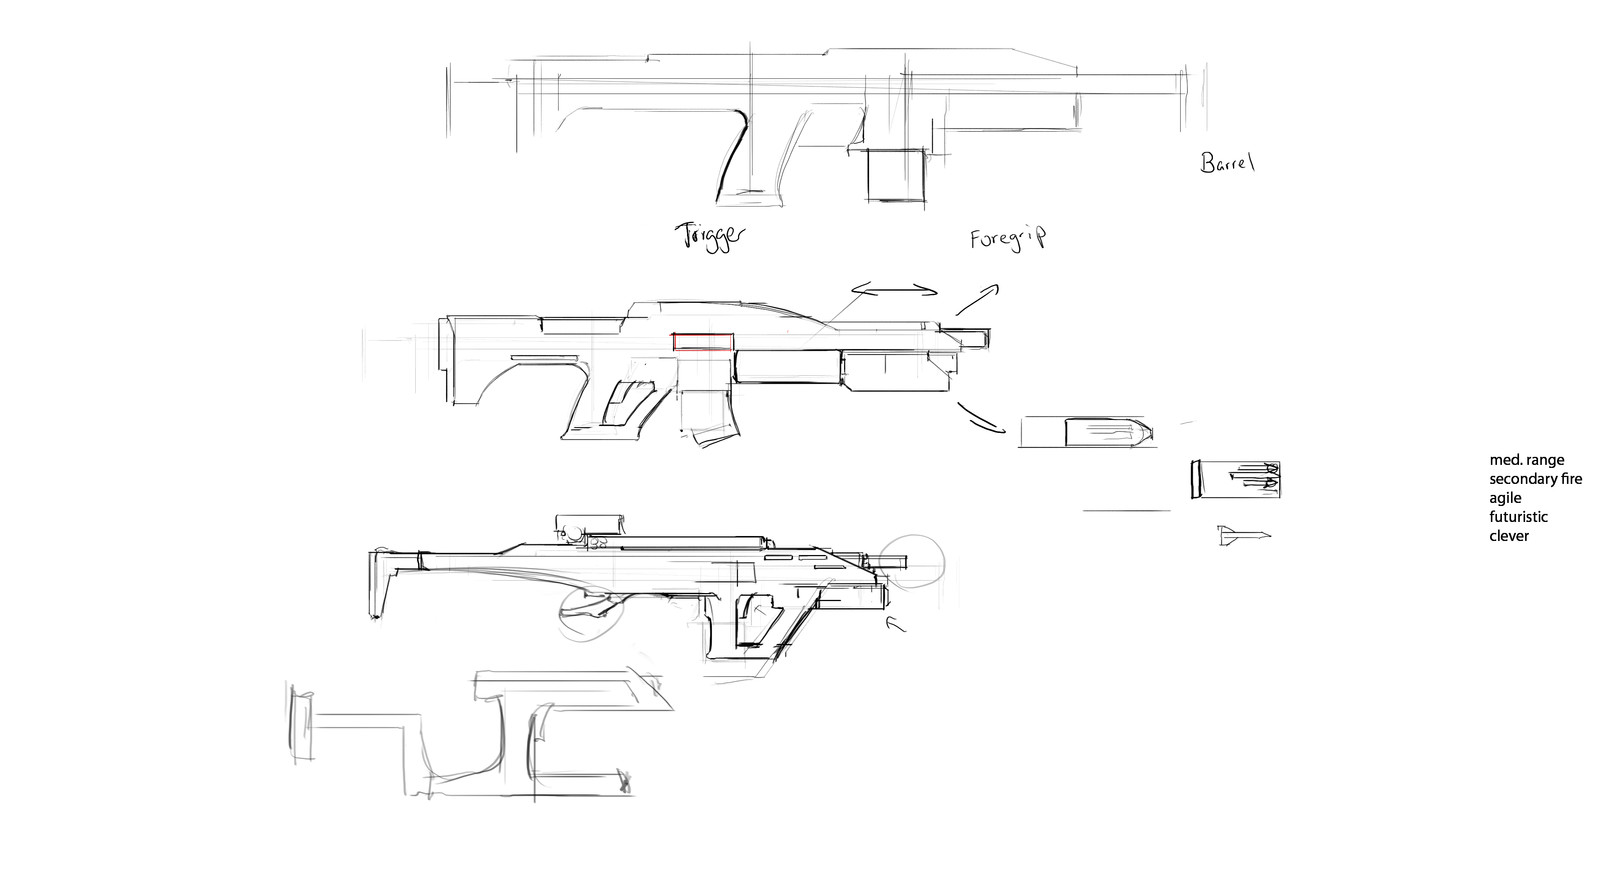 Initial sketch ideations - very loose ideas